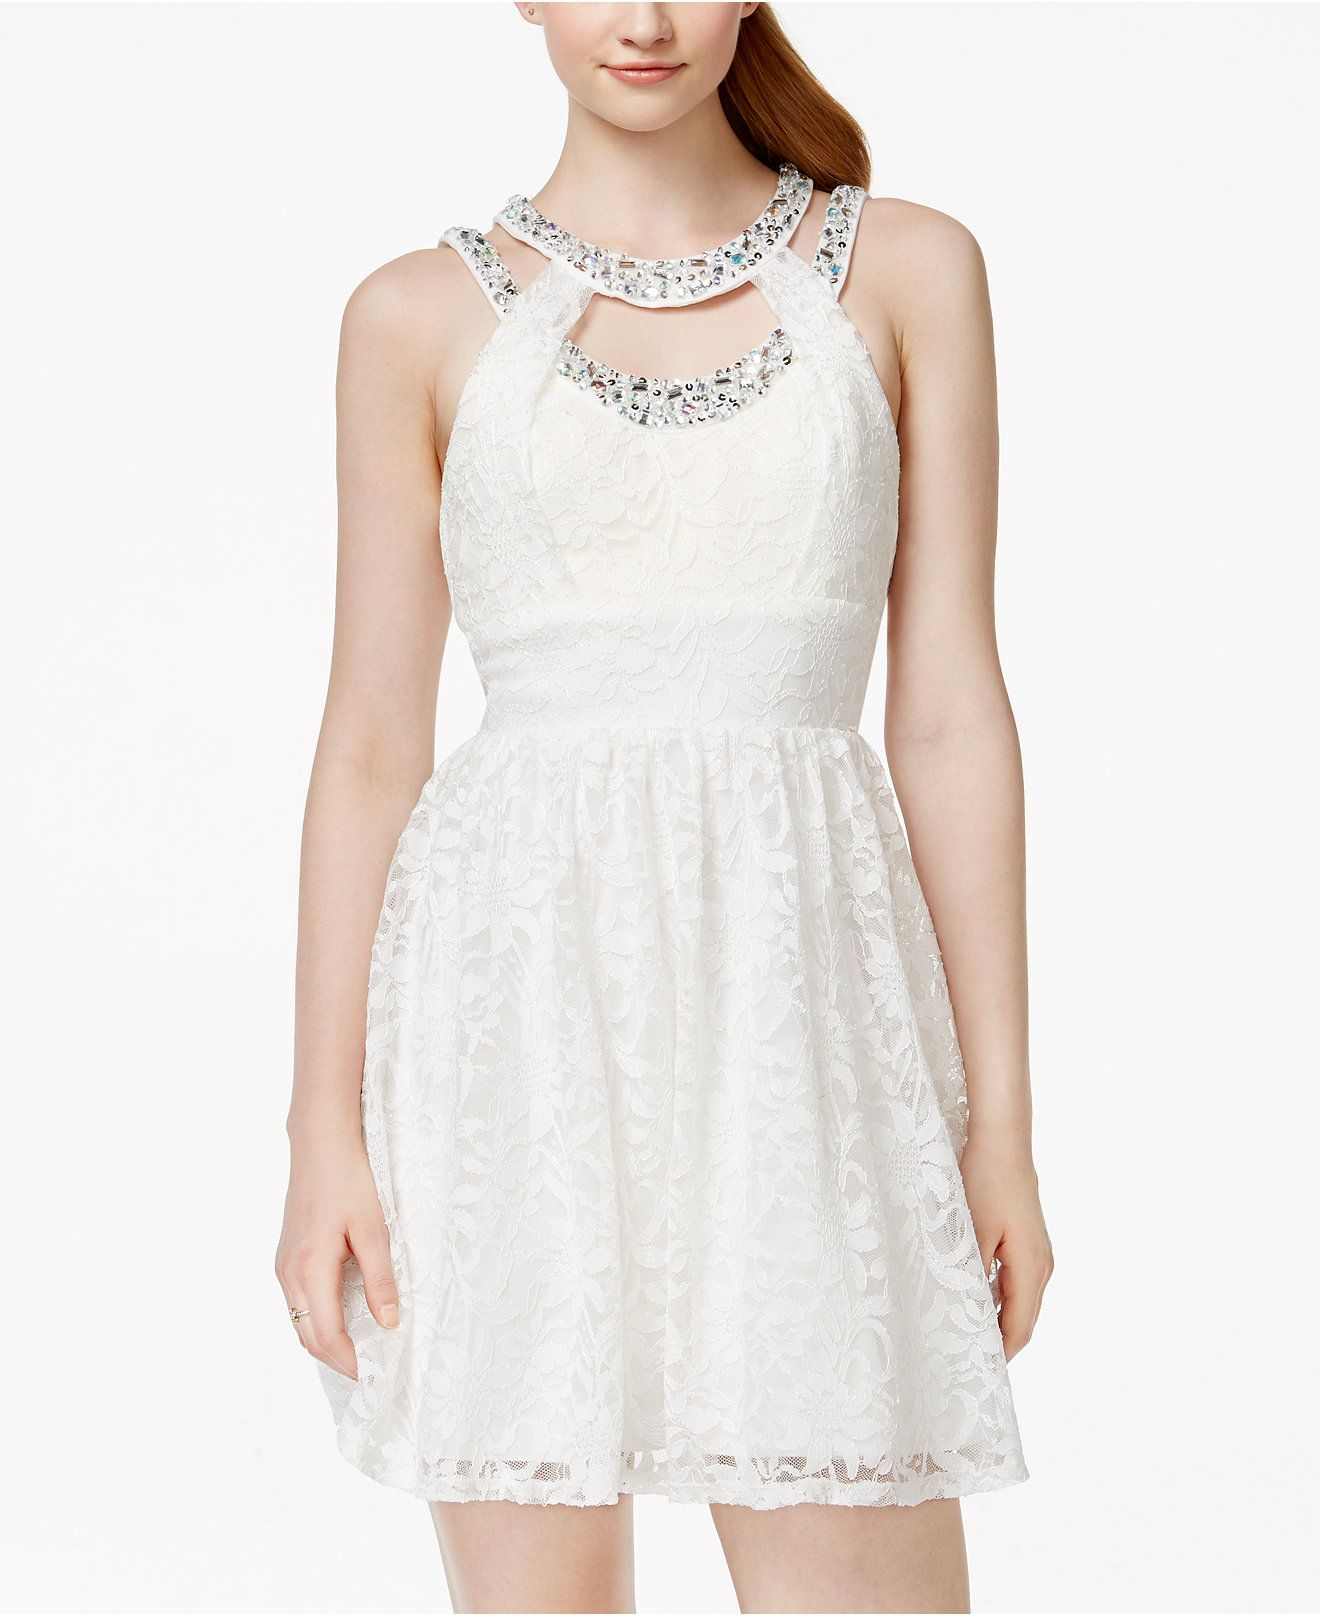 a1950aef61469 Trixxi Juniors' Embellished Lace Fit-and-Flare Dress - Juniors Shop All  Prom Dresses - Macy's